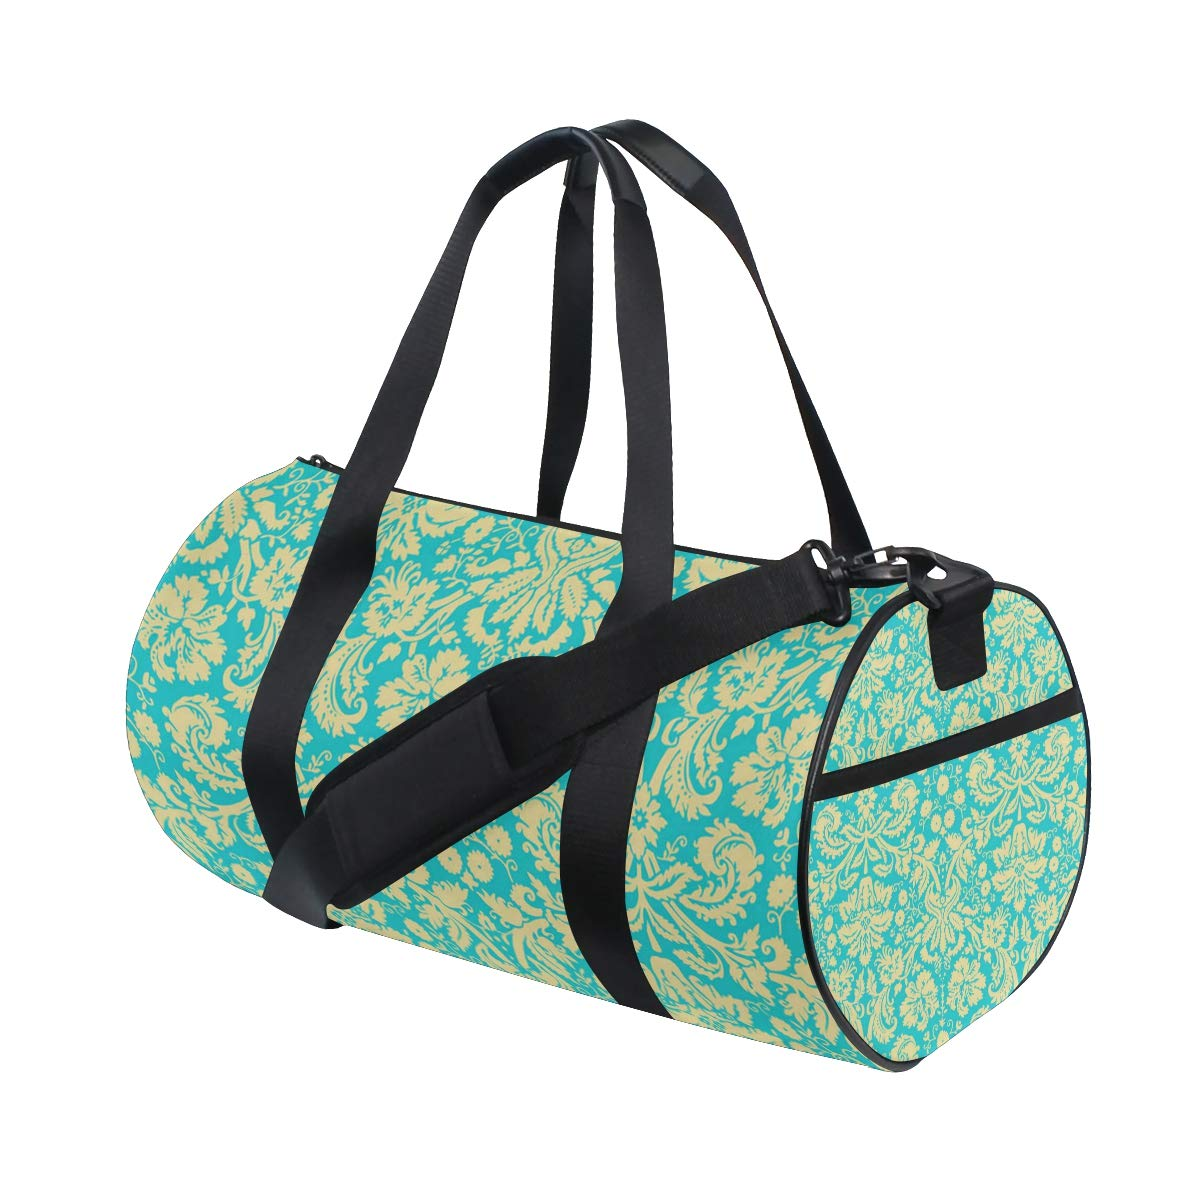 OuLian Women Gym Bag Wedding Patterns Mens Camp Duffel Bags Duffle Luggage Travel Bag